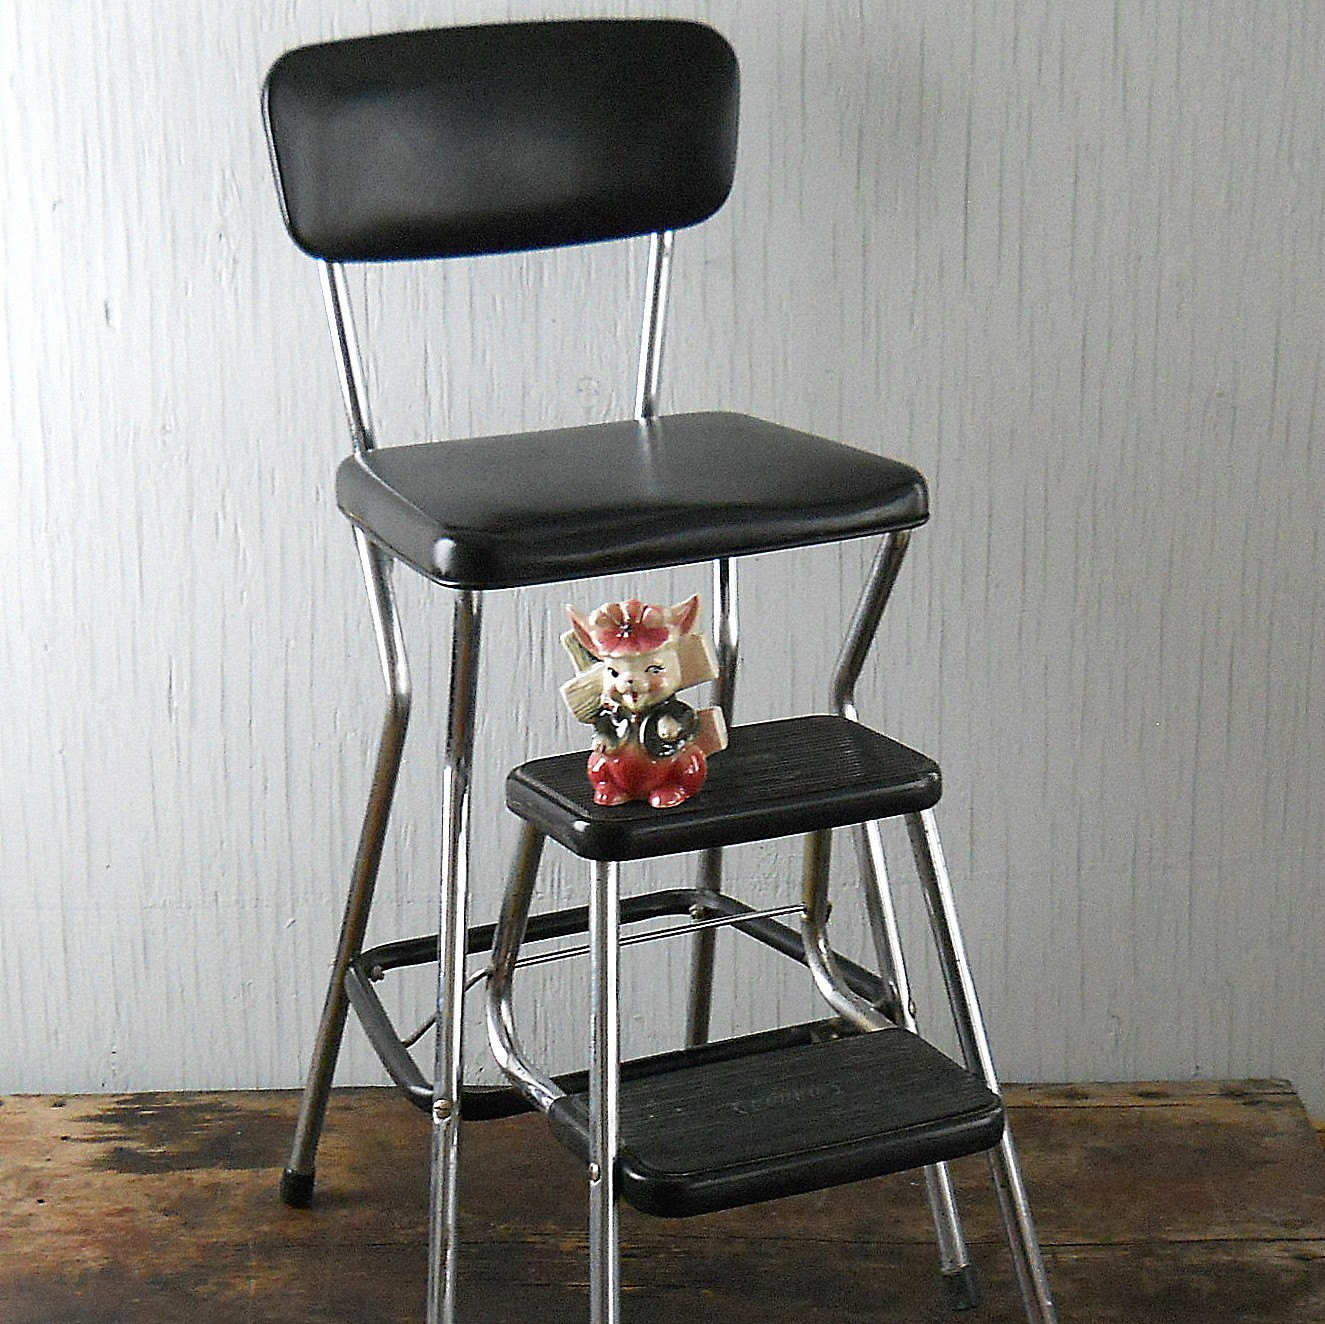 stool chair images big nate dibs on this vintage cosco step by lisabretrostyle2 etsy